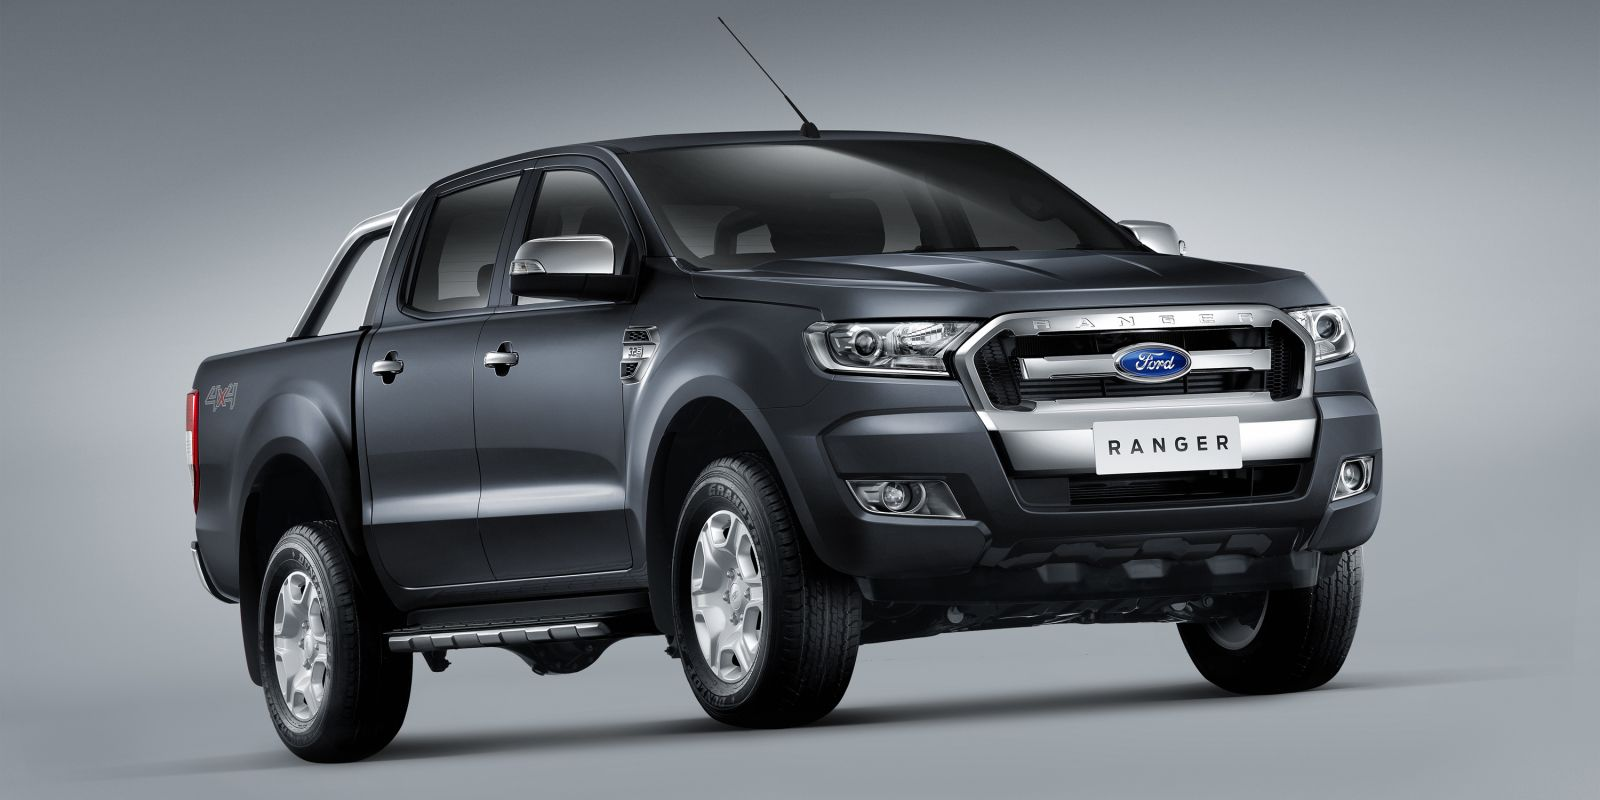 2018 Ford Ranger revisited